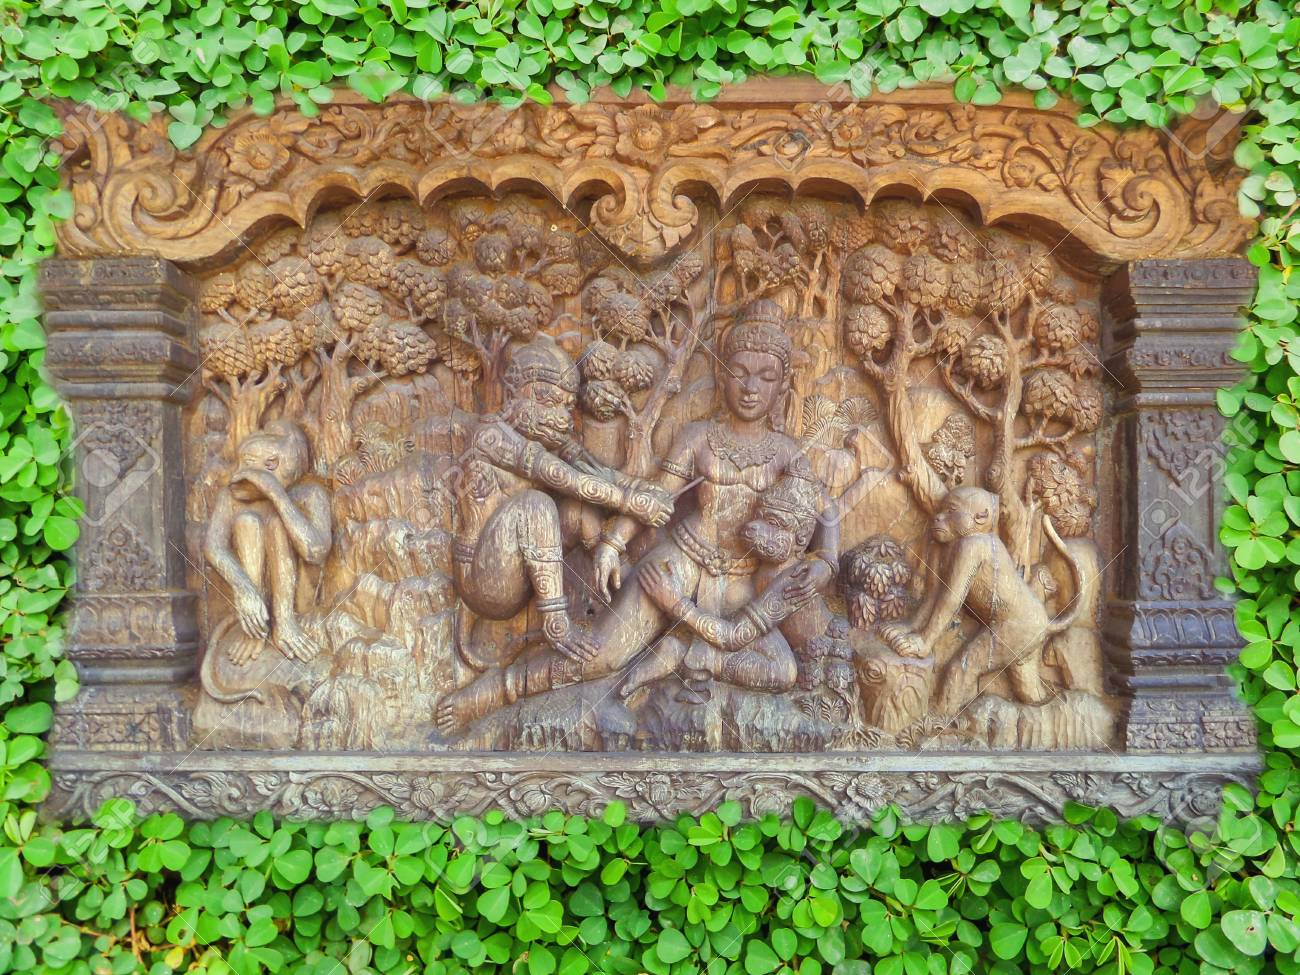 Wood Carving And Clover Background In The Garden Stock Photo ...